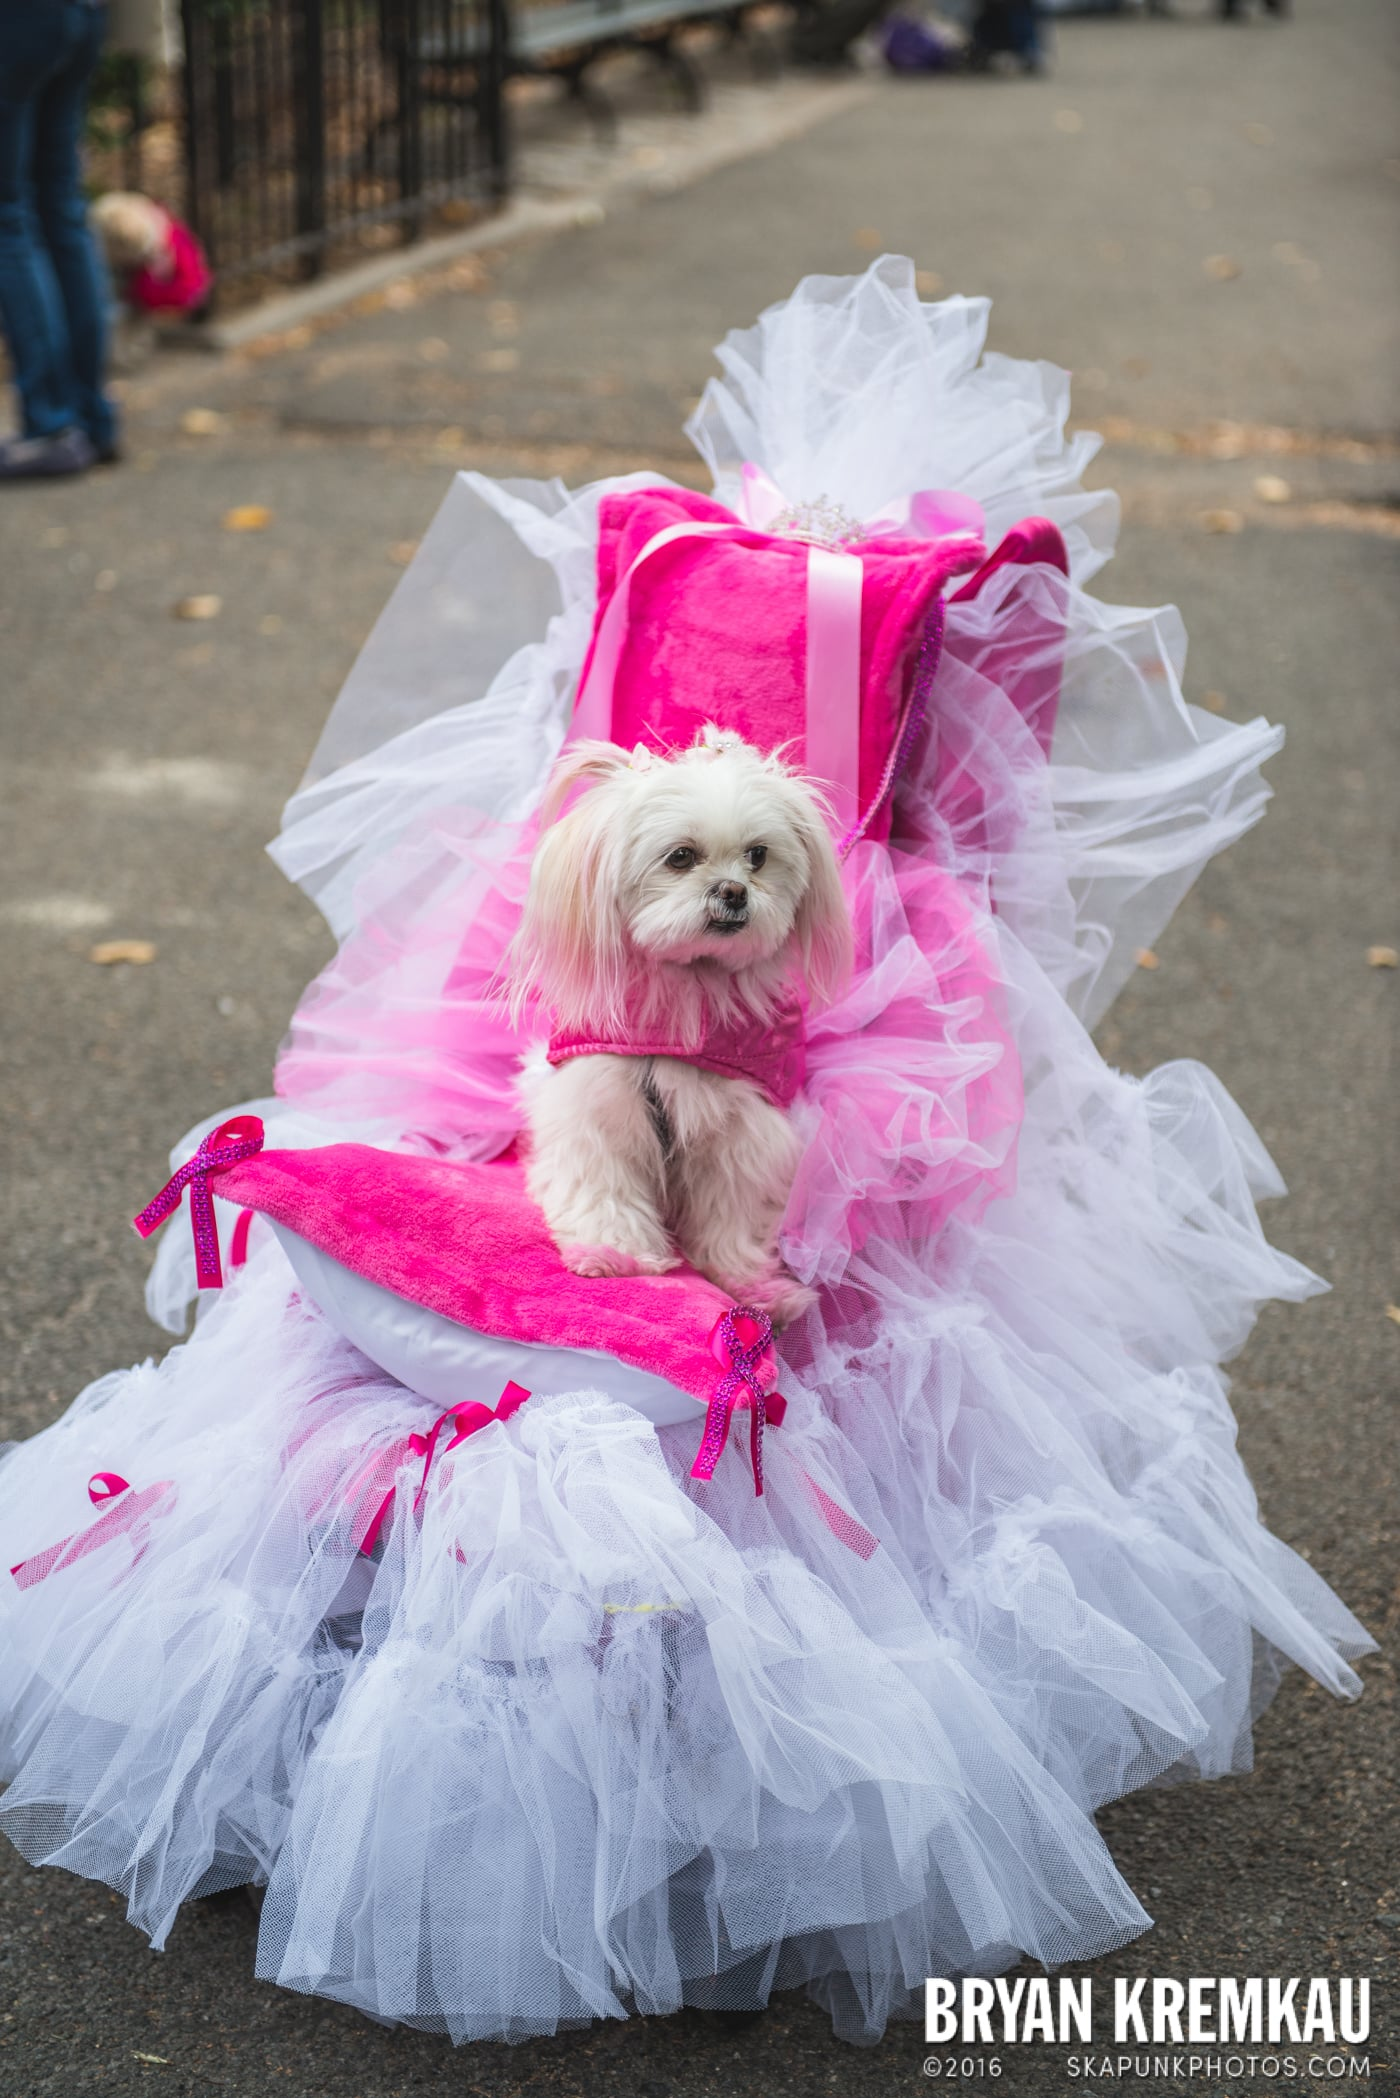 Tompkins Square Halloween Dog Parade 2015 @ Tompkins Square Park, NYC – 10.24.15 (49)